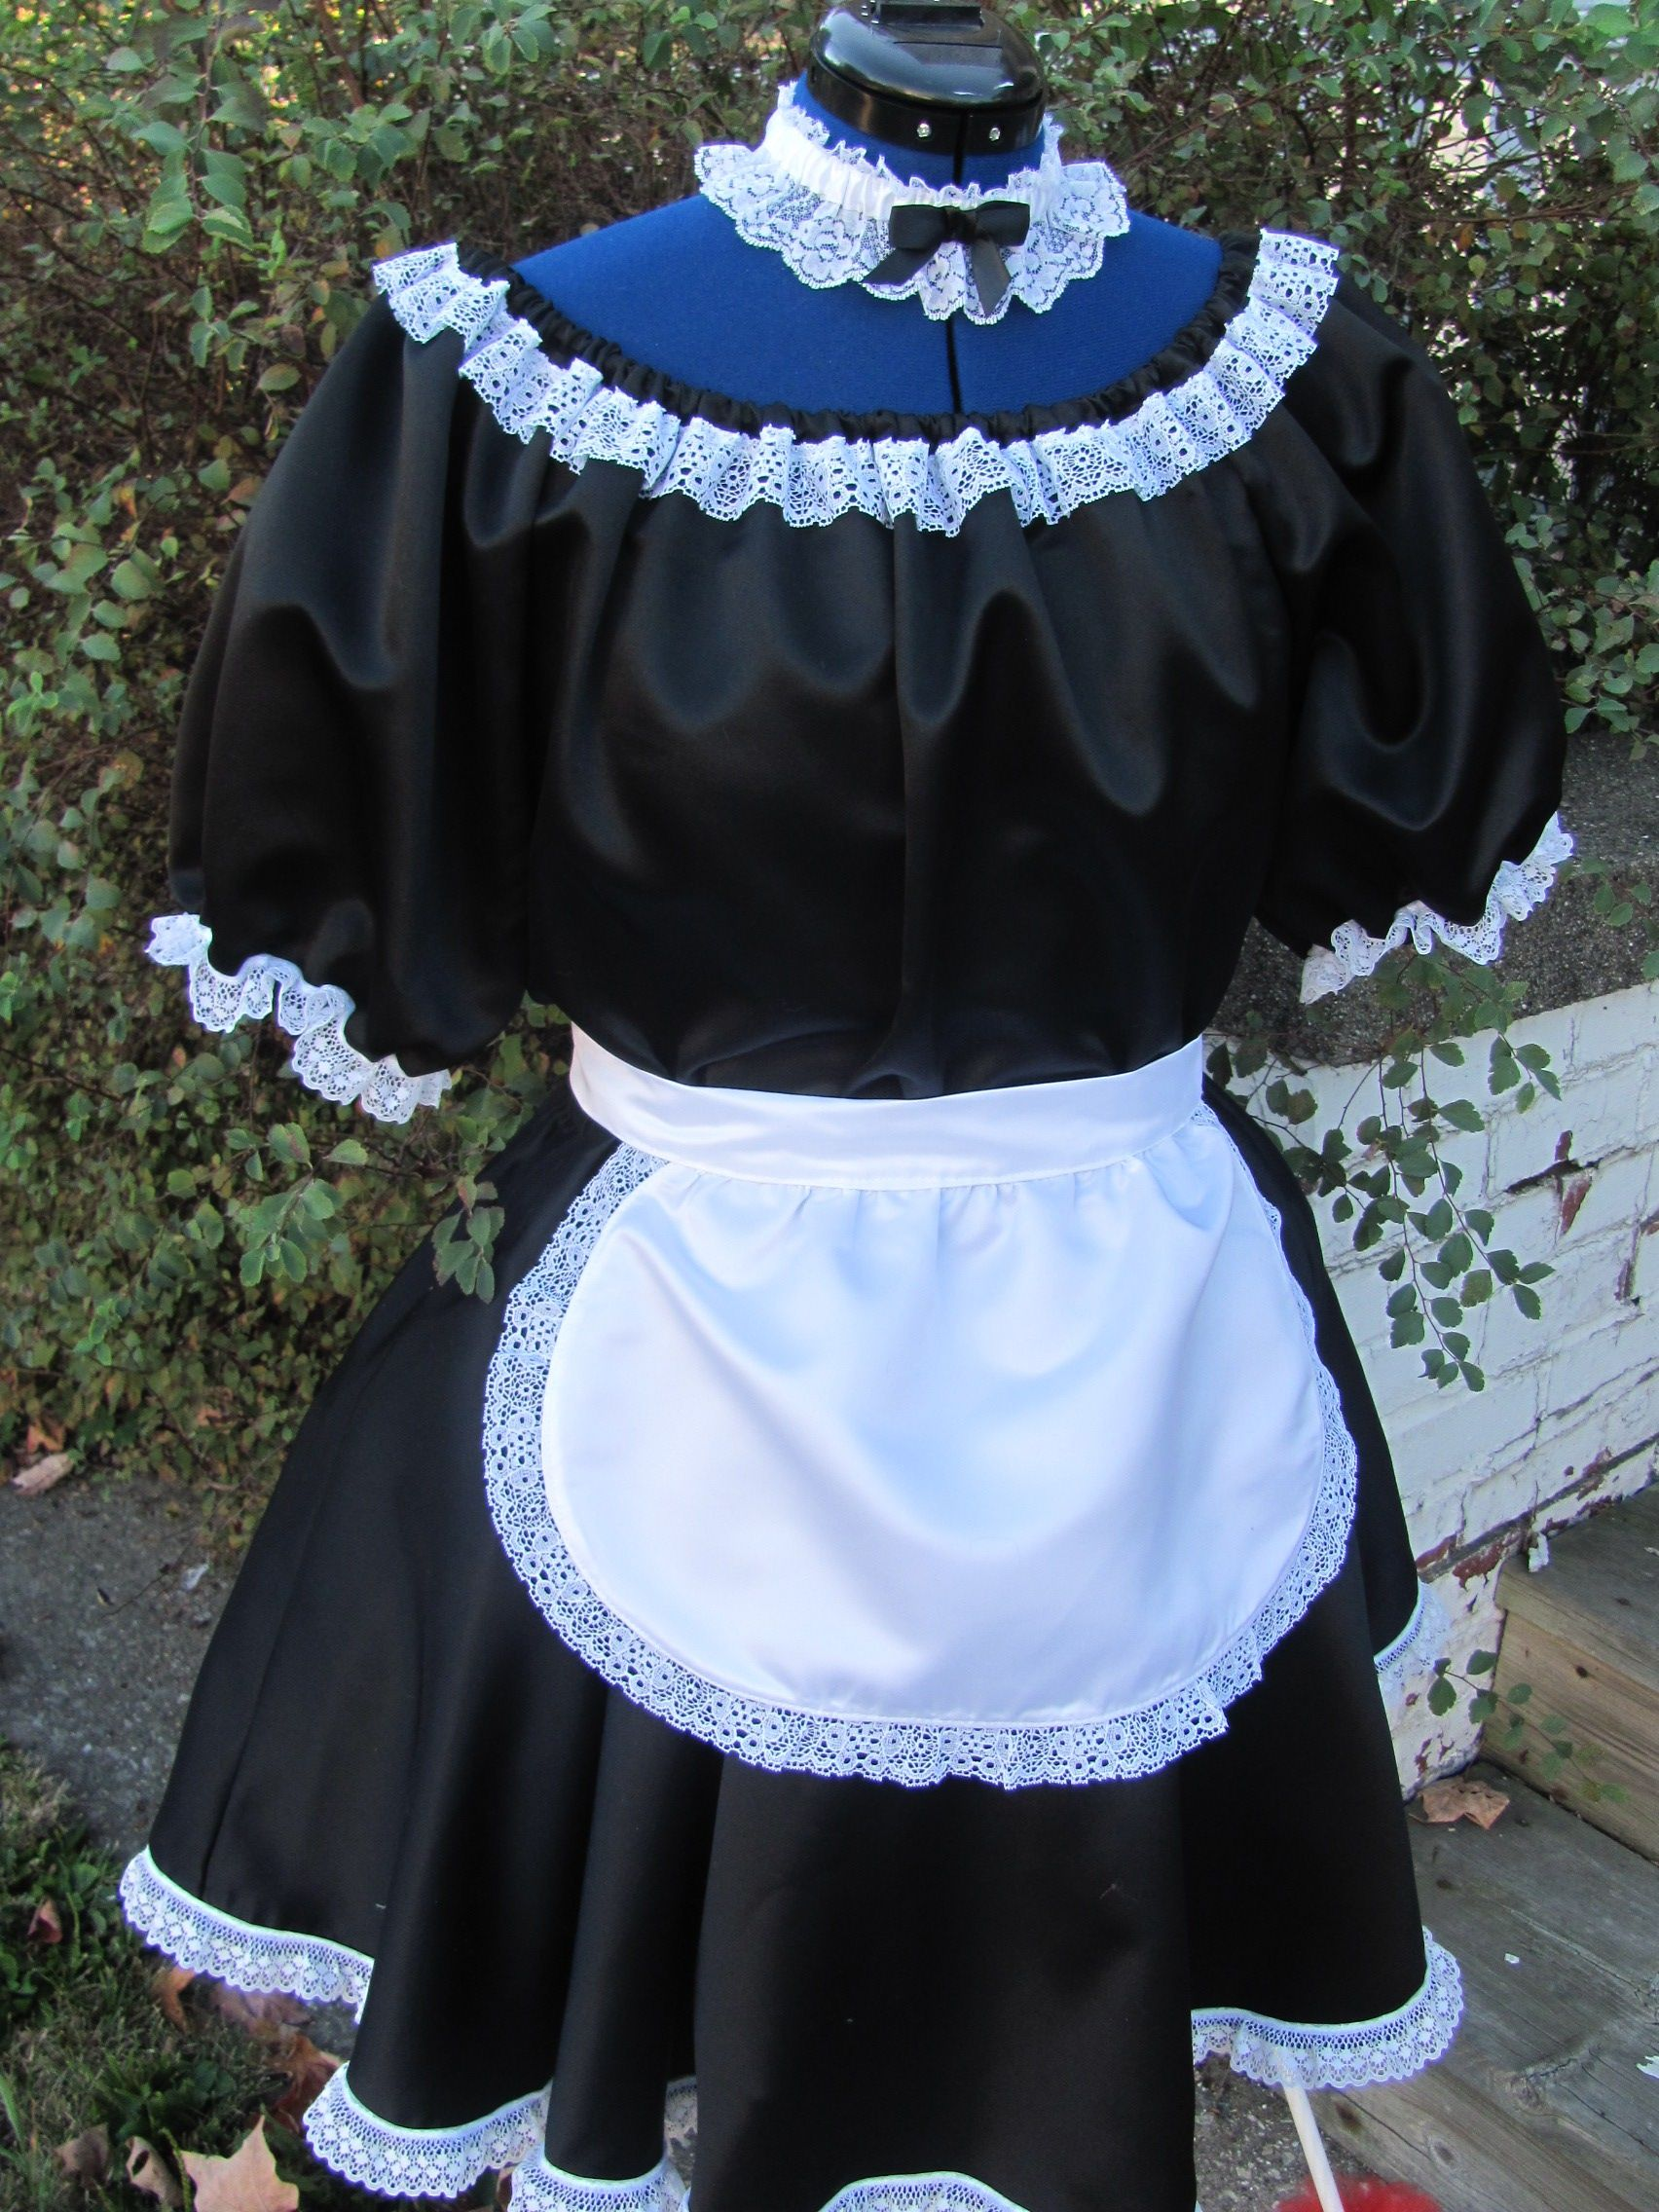 White apron lace trim - French Maid Black And White Satin With Lace Trim Includes A Frilly Apron And